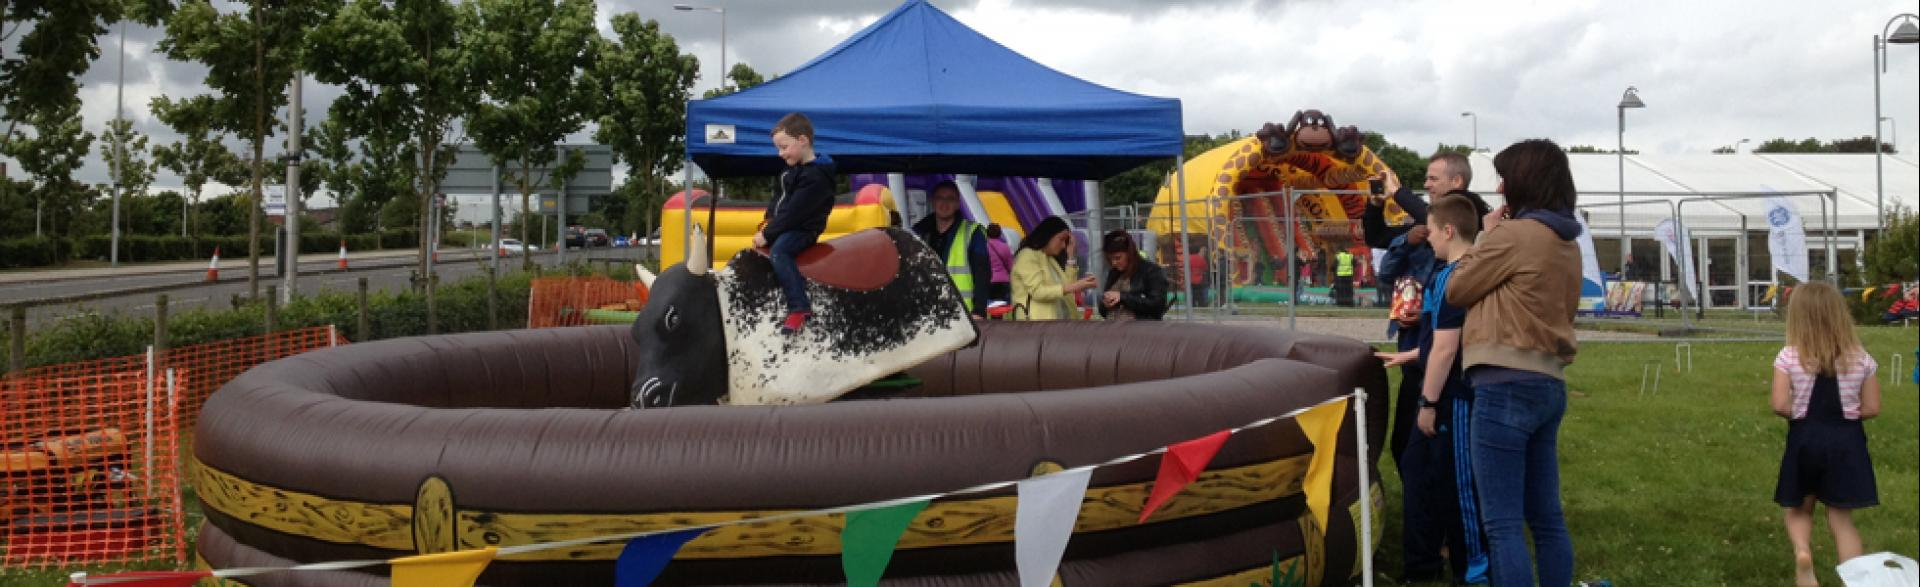 Corporate Family Fun Days, Aberdeen, June 2014